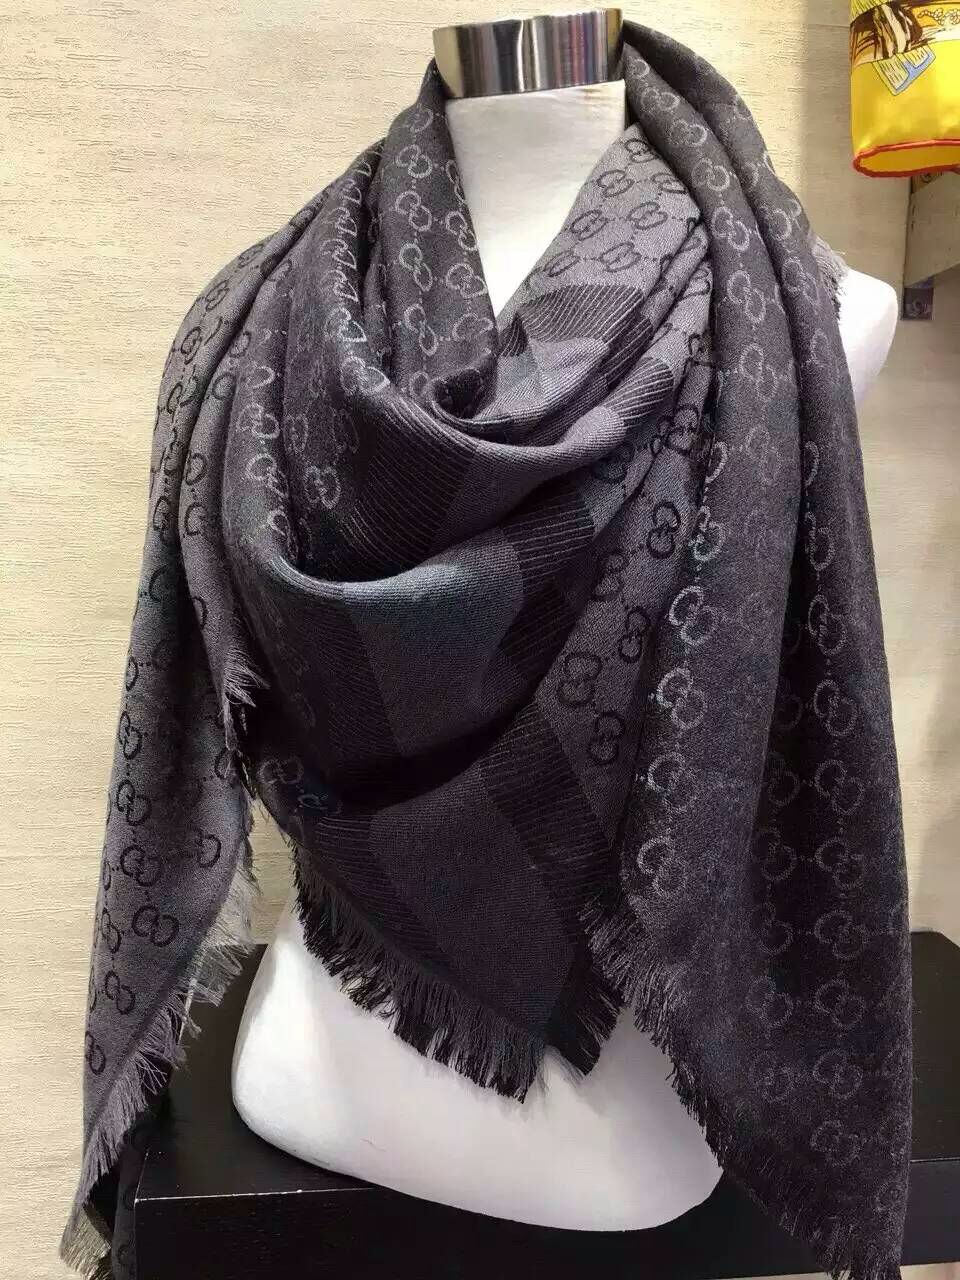 d6df257e1b Gucci scarf/shawl | Gucci scarf | Gucci scarf, Fashion, Scarf jewelry